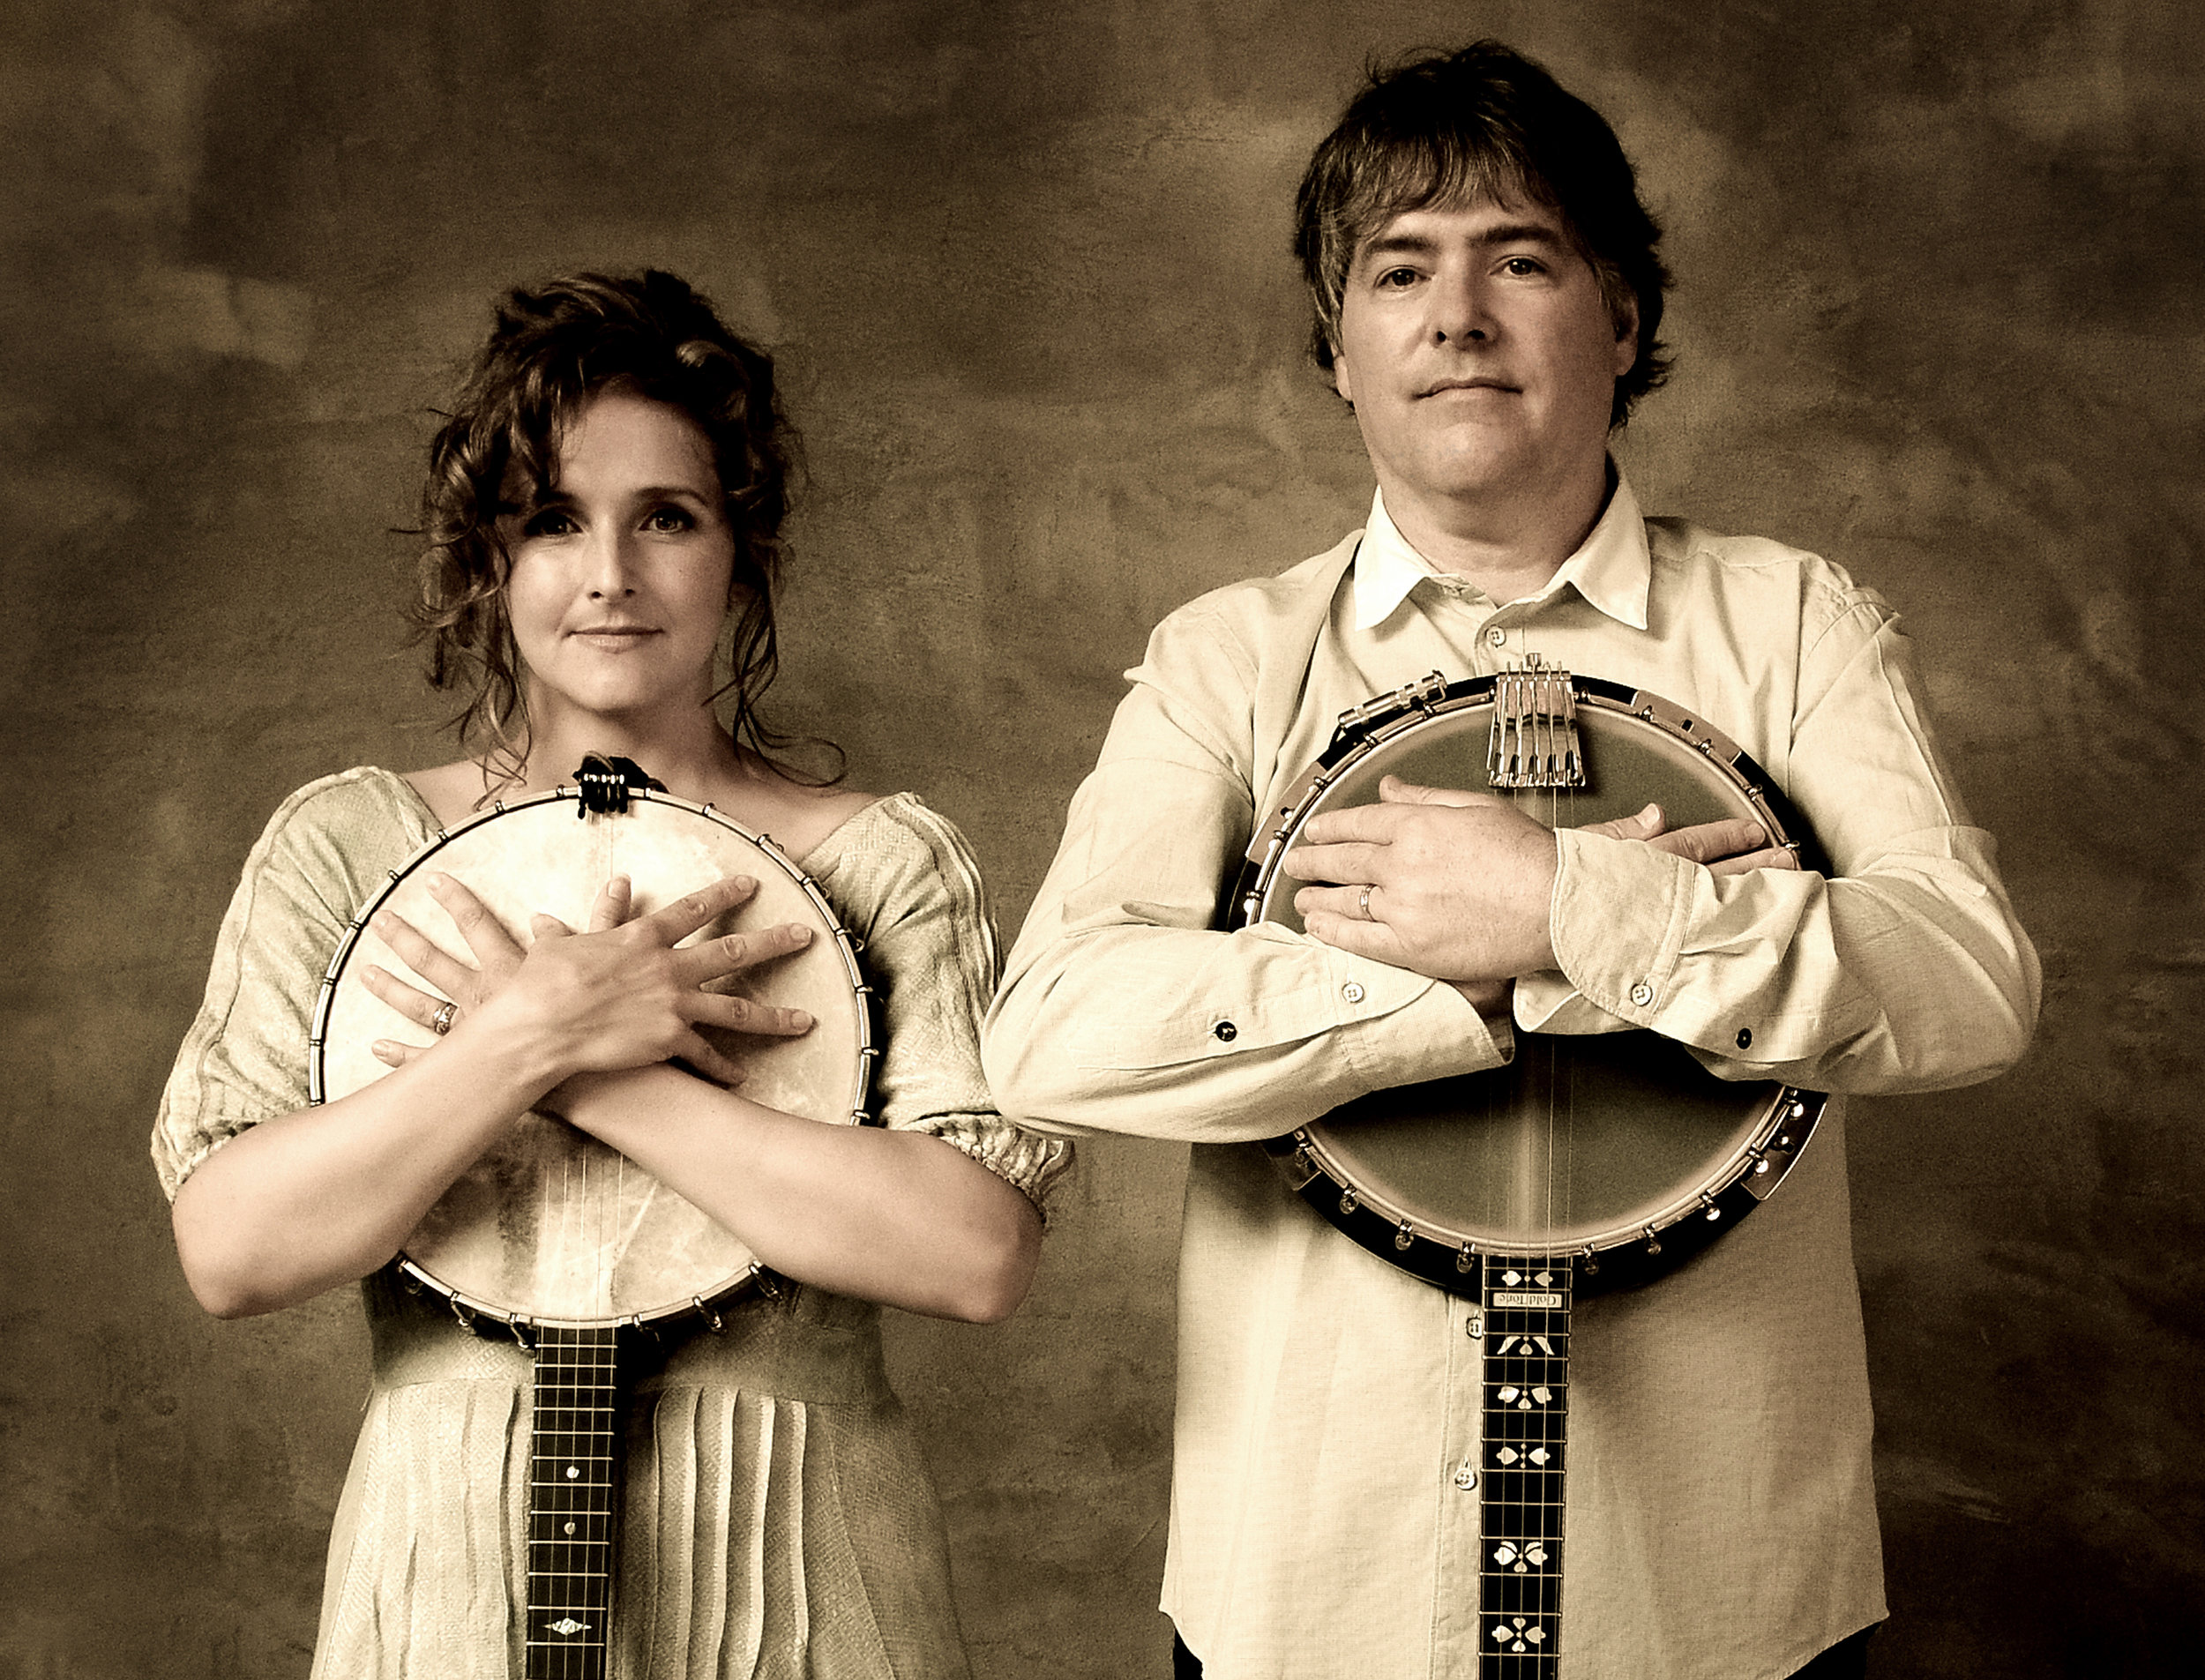 (Left to right) Abigail Washburn and Béla Fleck, photo by Jim McGuire